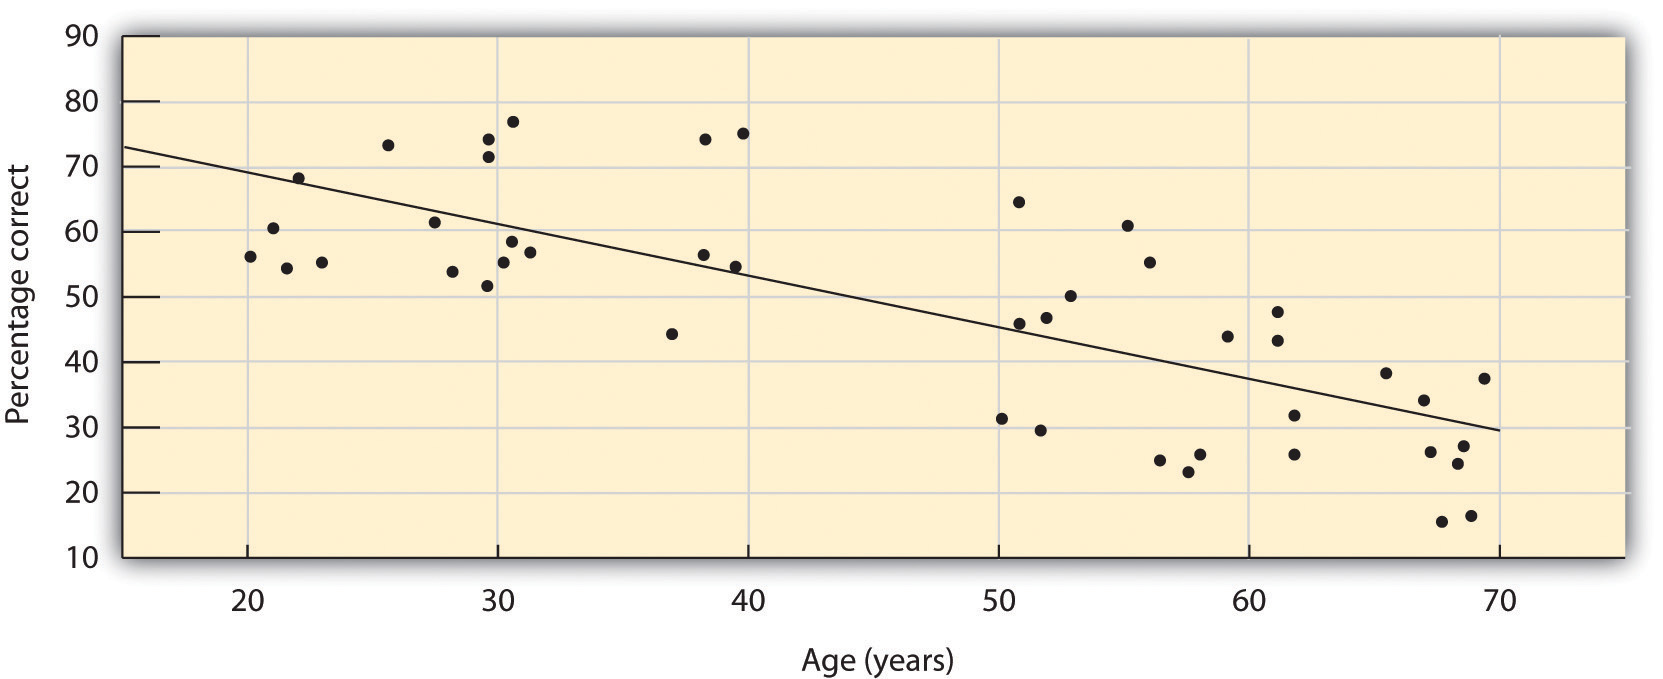 The ability to identify common odorants declines markedly between 20 and 70 years of age